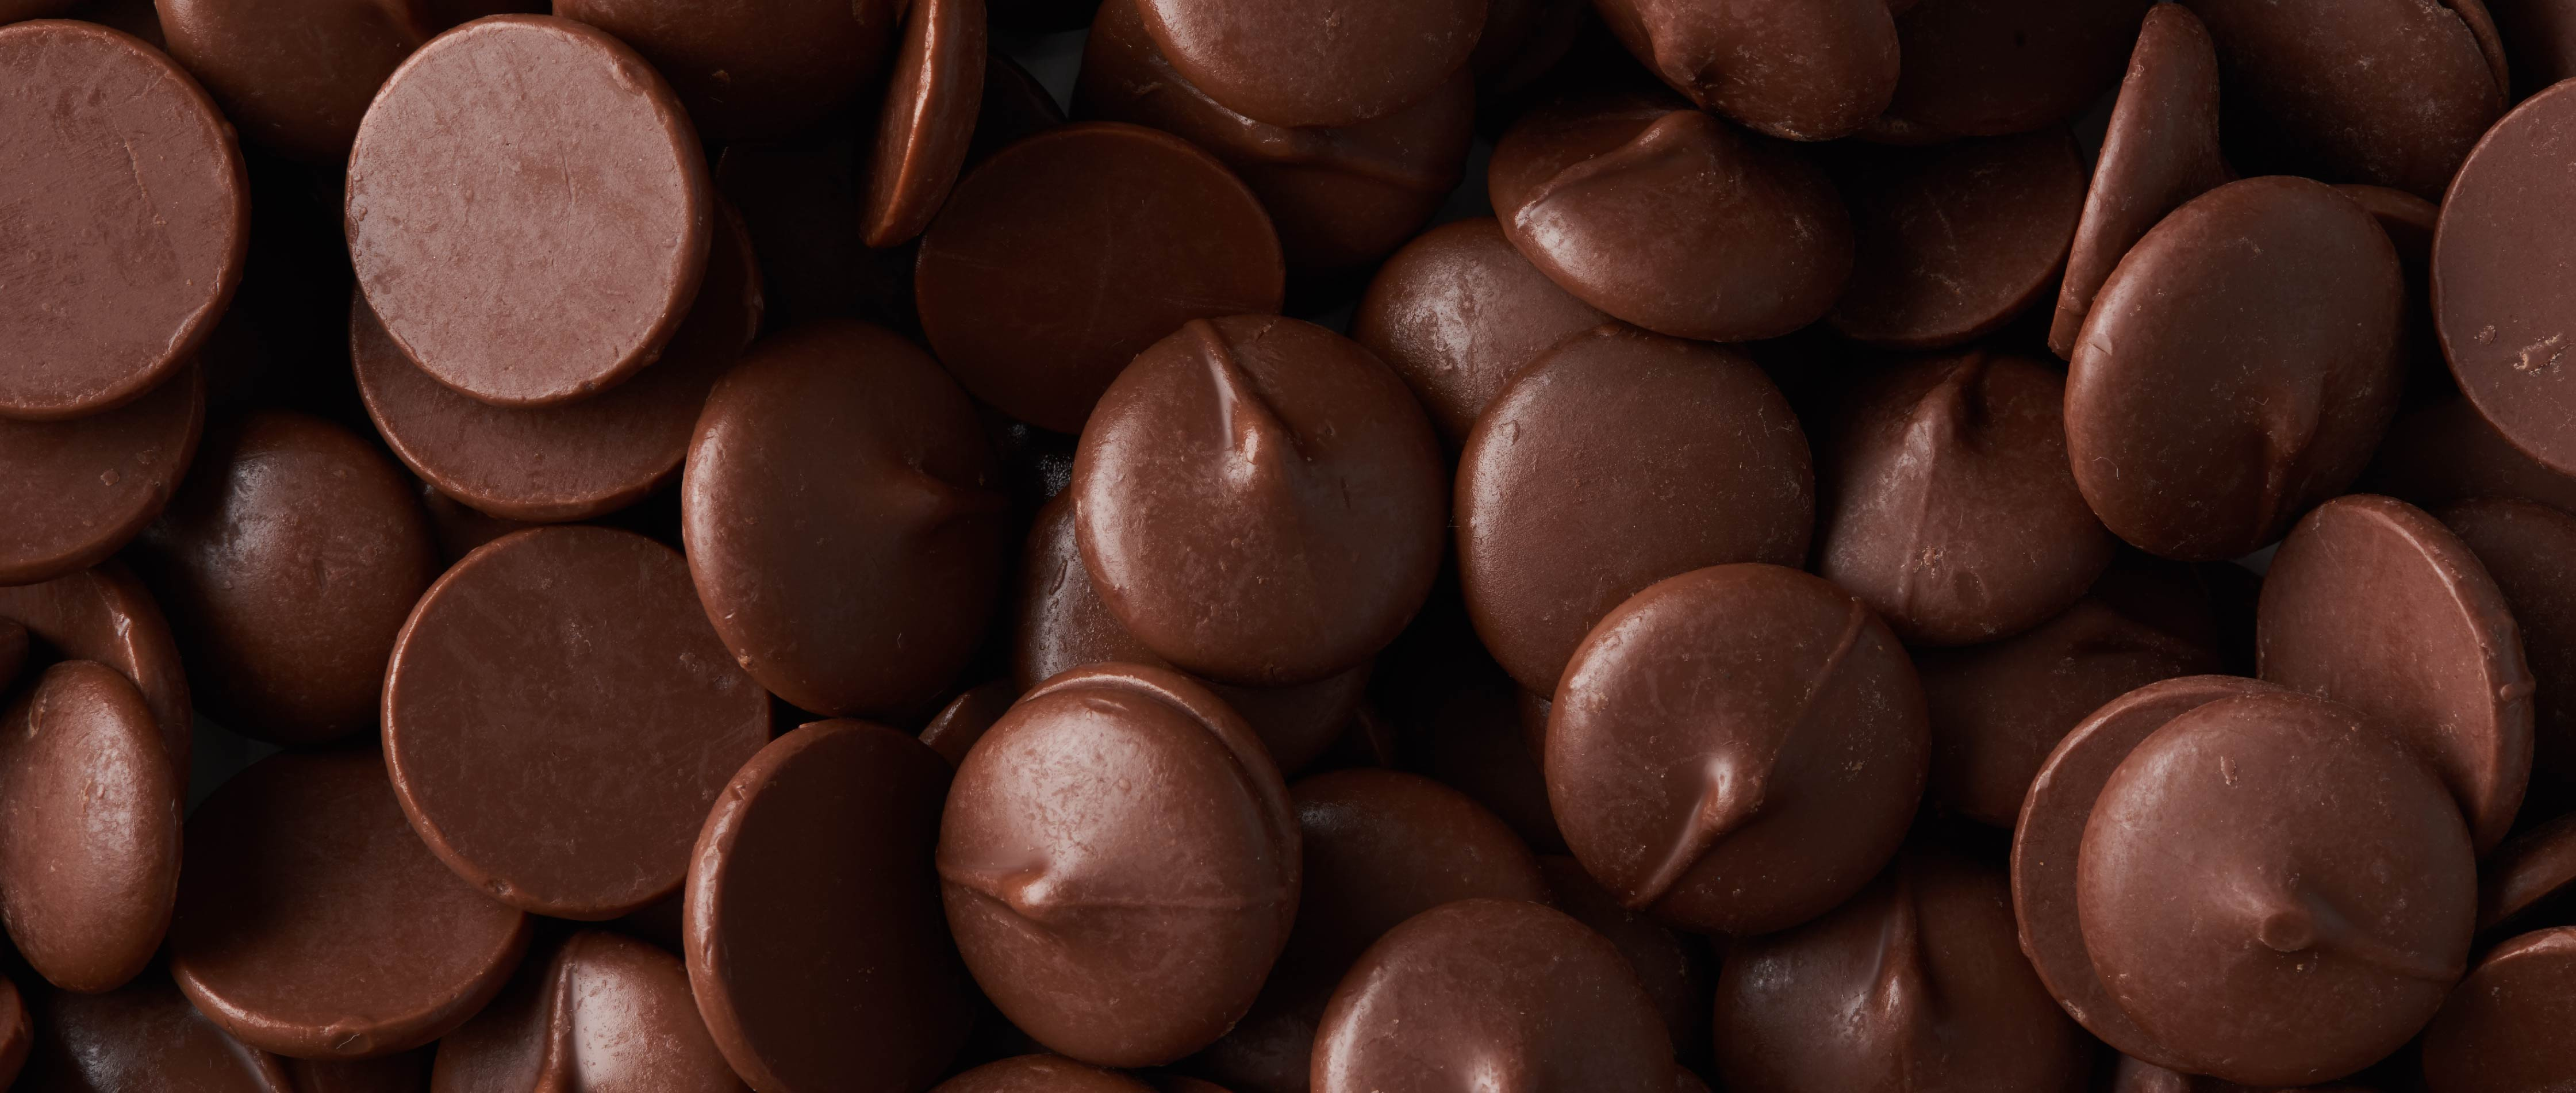 Photography of chocolate buttons for Tcho chocolate